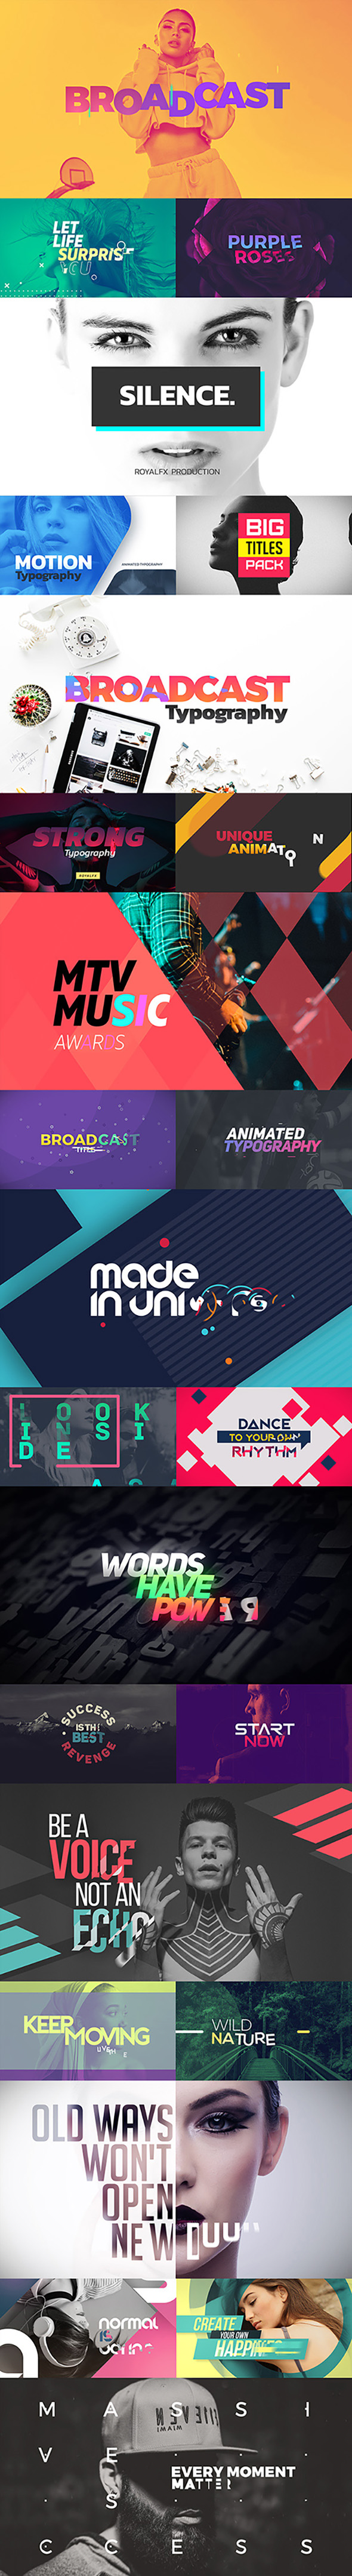 Videohive TypeX - Text Animation Tool | Broadcast Pack: Modern Colorful Typography Titles V2.0.2 20233979